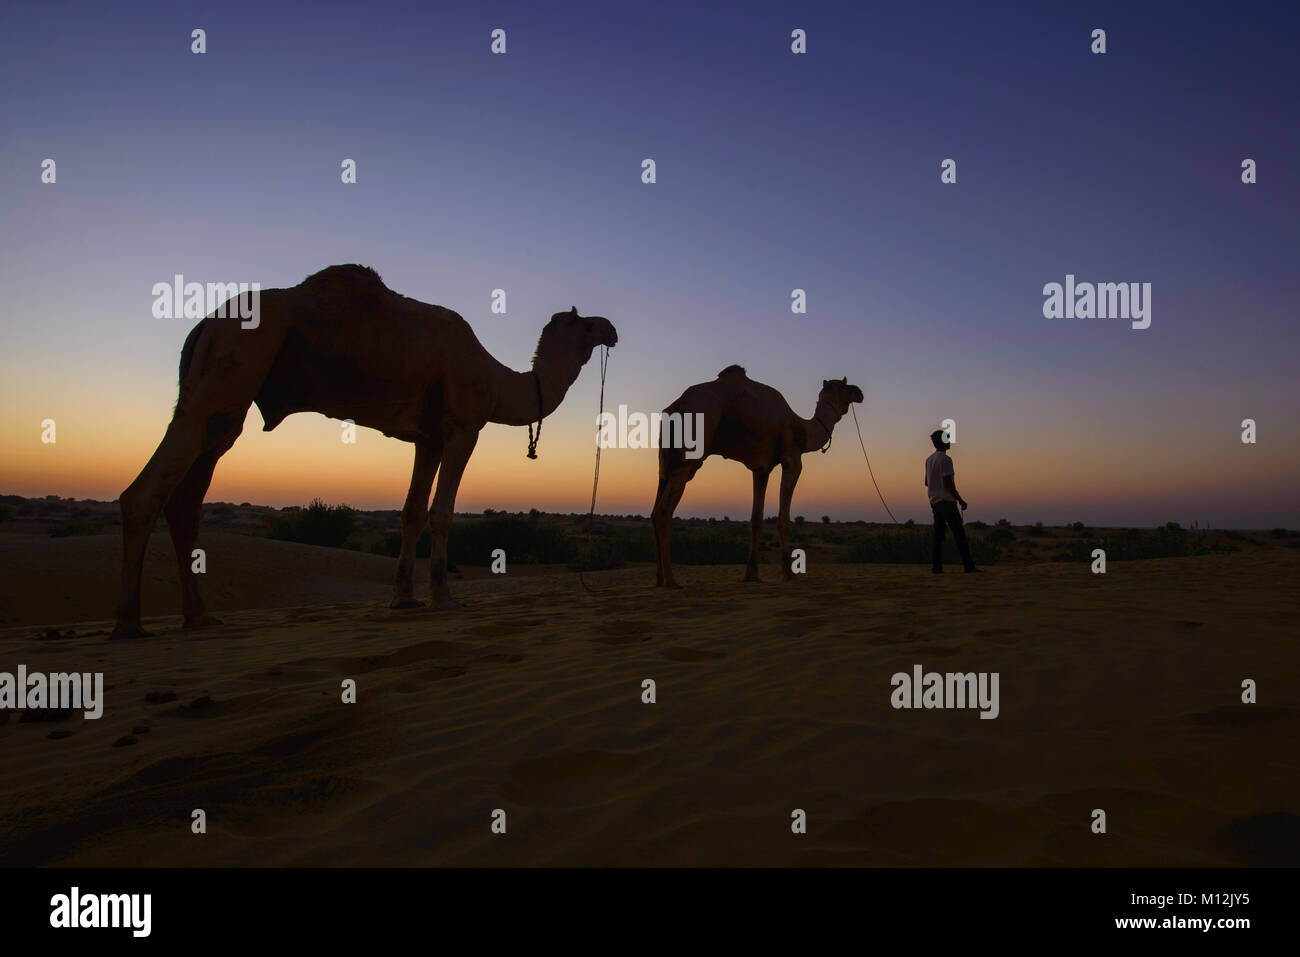 Camels at sunset, Thar Desert, Rajasthan, India - Stock Image